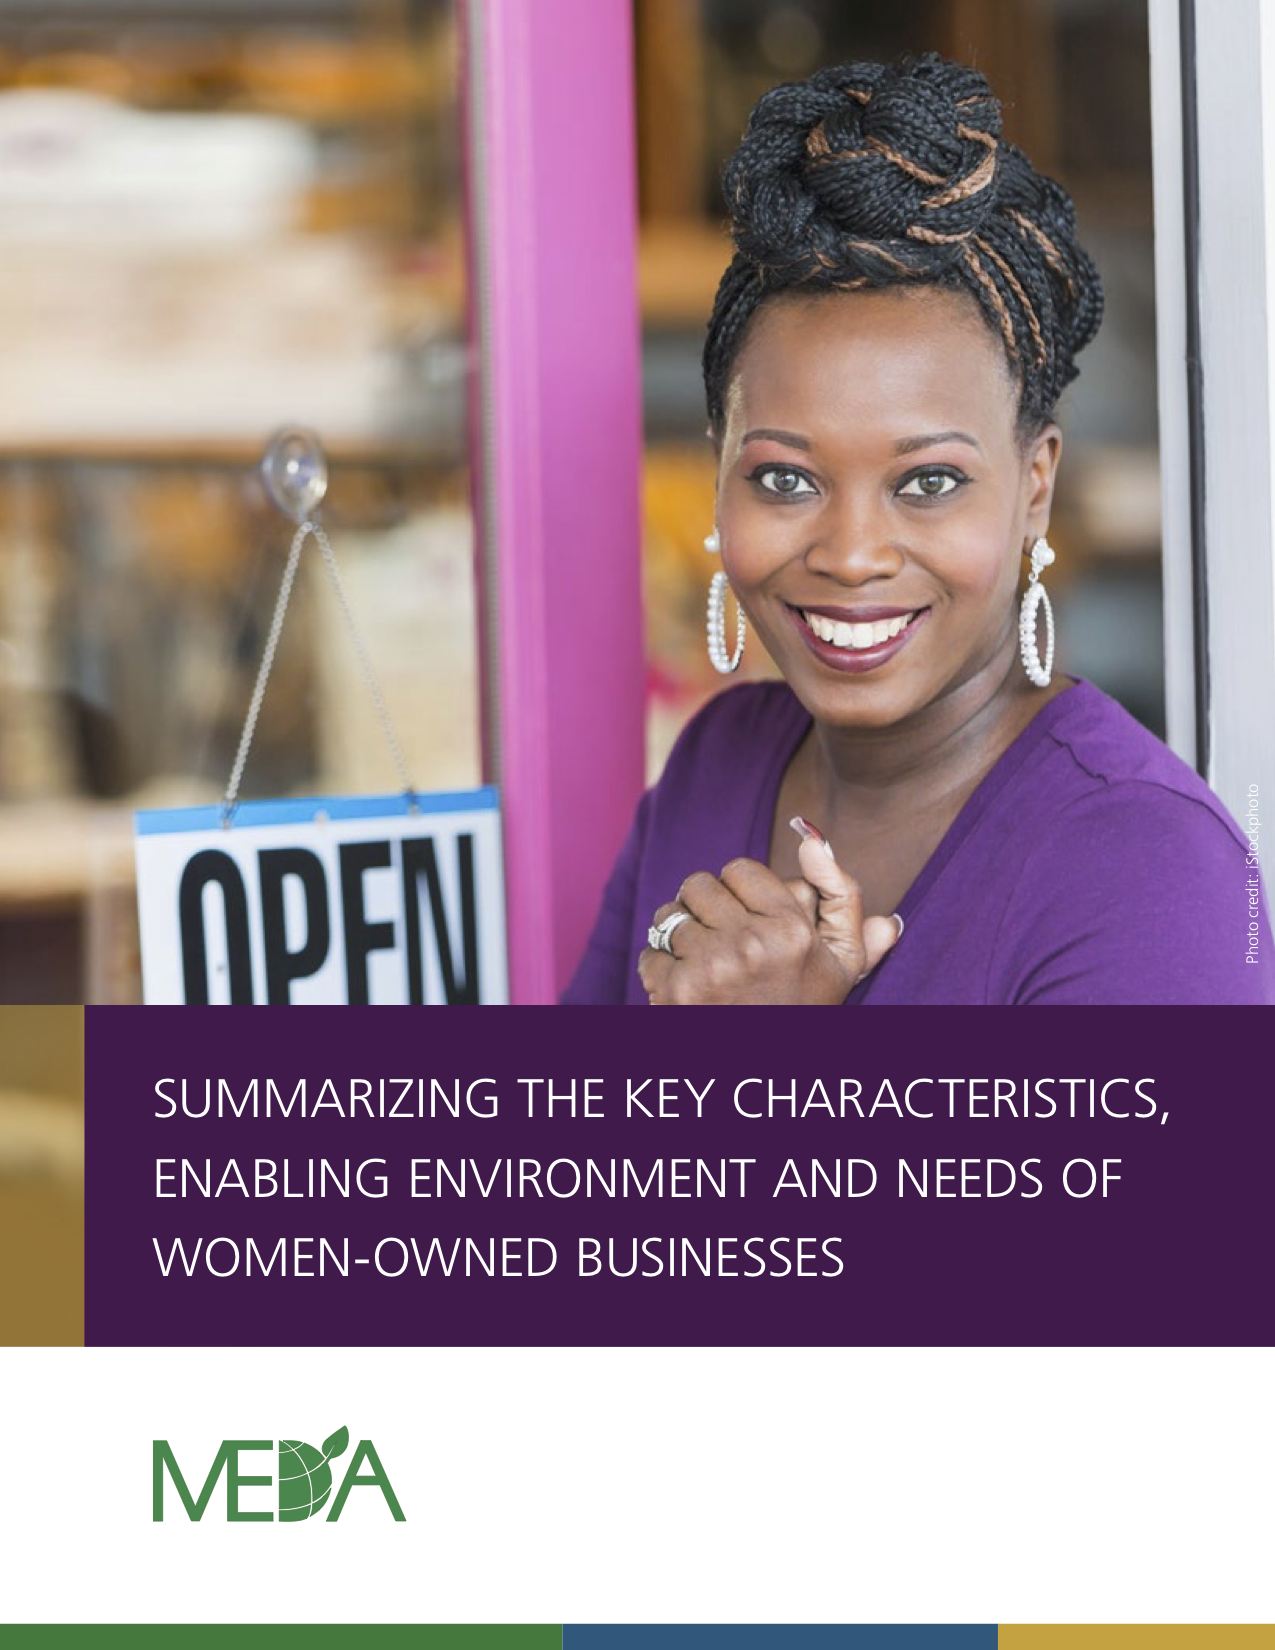 Summarizing the key characteristics, enabling environment, and needs of women-owned businesses